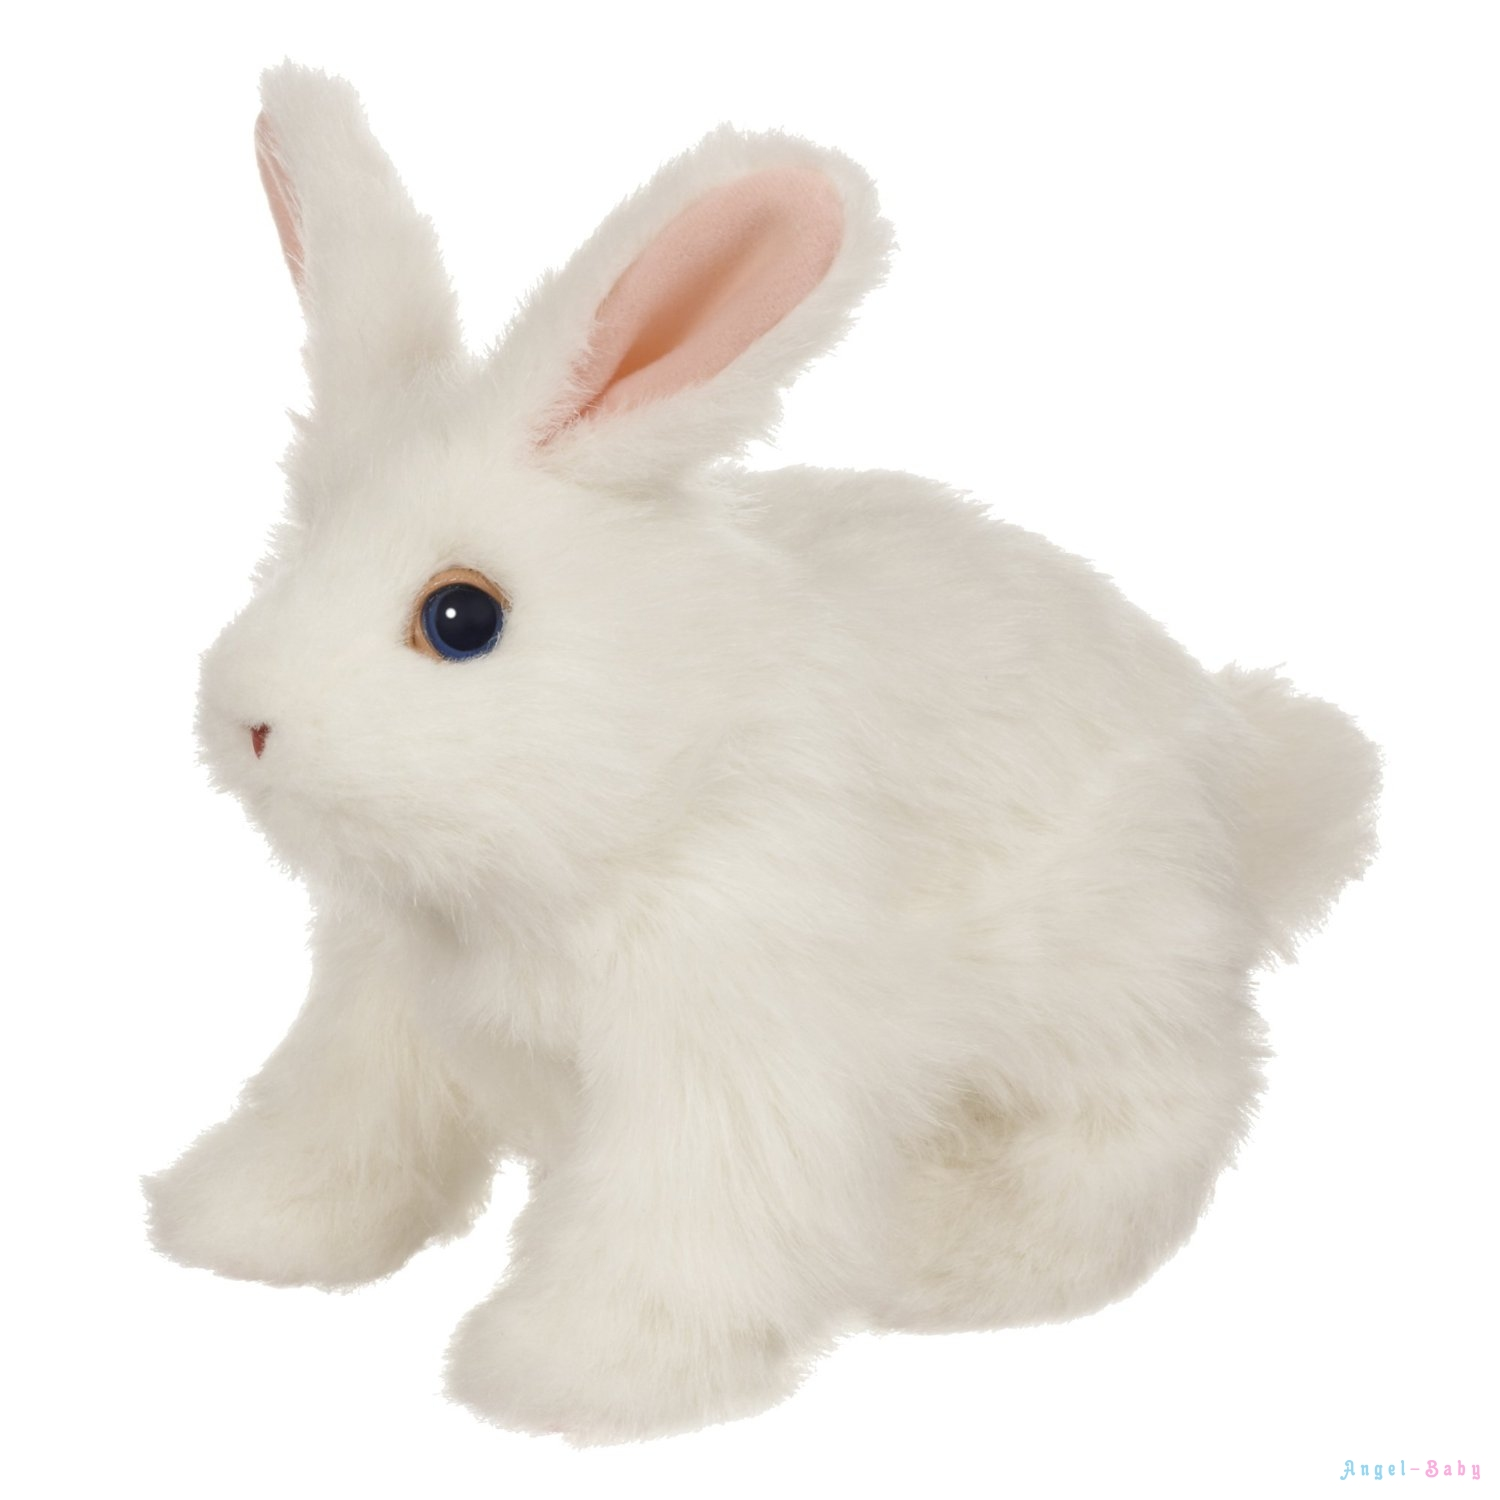 Интерактивный кролик FurReal Friends Bunny от Hasbro (США) 36124